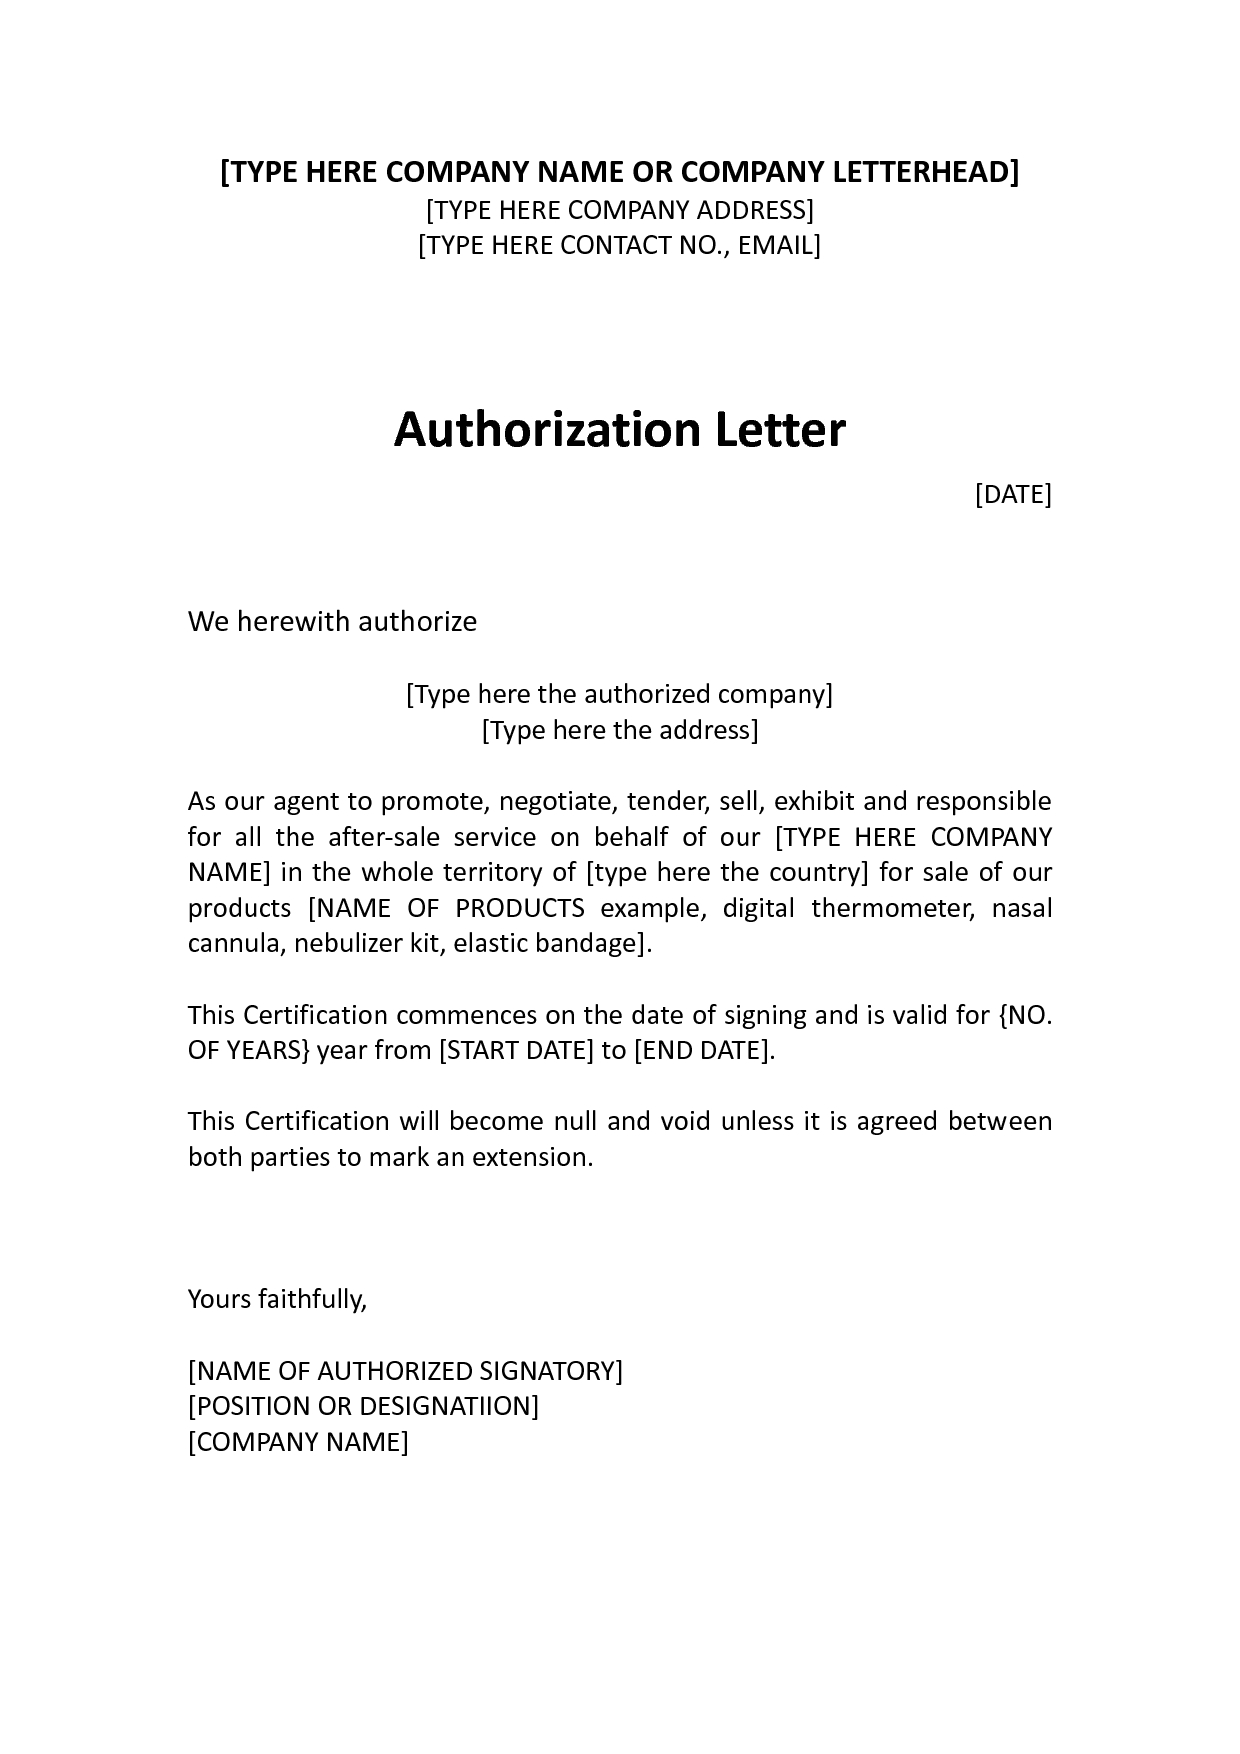 Permission to Travel Letter Template - Authorization Distributor Letter Sample Distributor Dealer